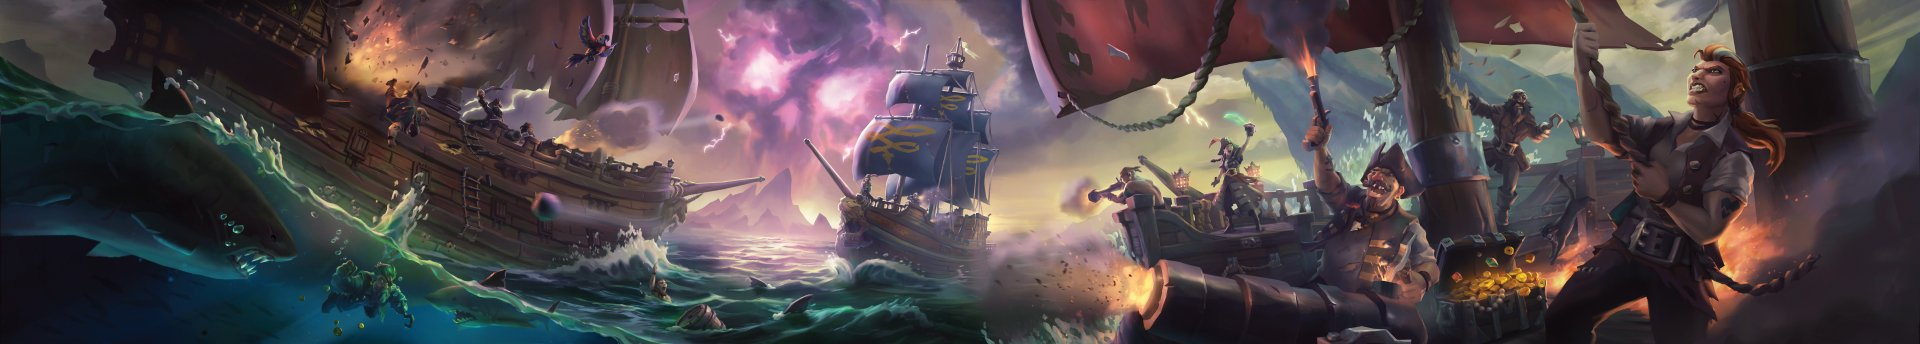 Video Game - Sea Of Thieves  Pirate Ship Pirate Wallpaper